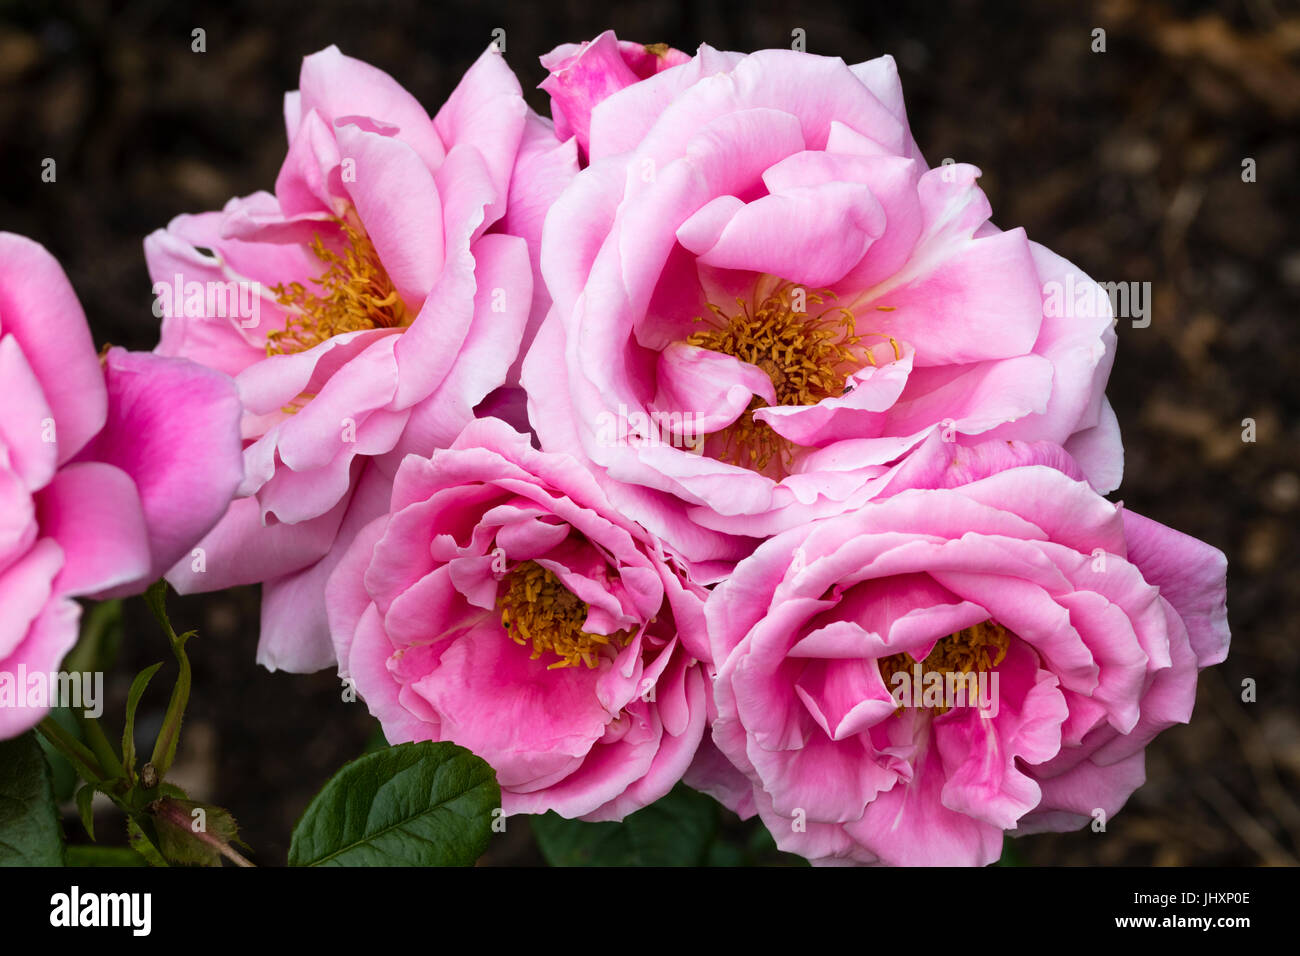 Cluster of pink, semi-double flowers of the hybrid tea rose, Rosa 'Pink Favourite' - Stock Image